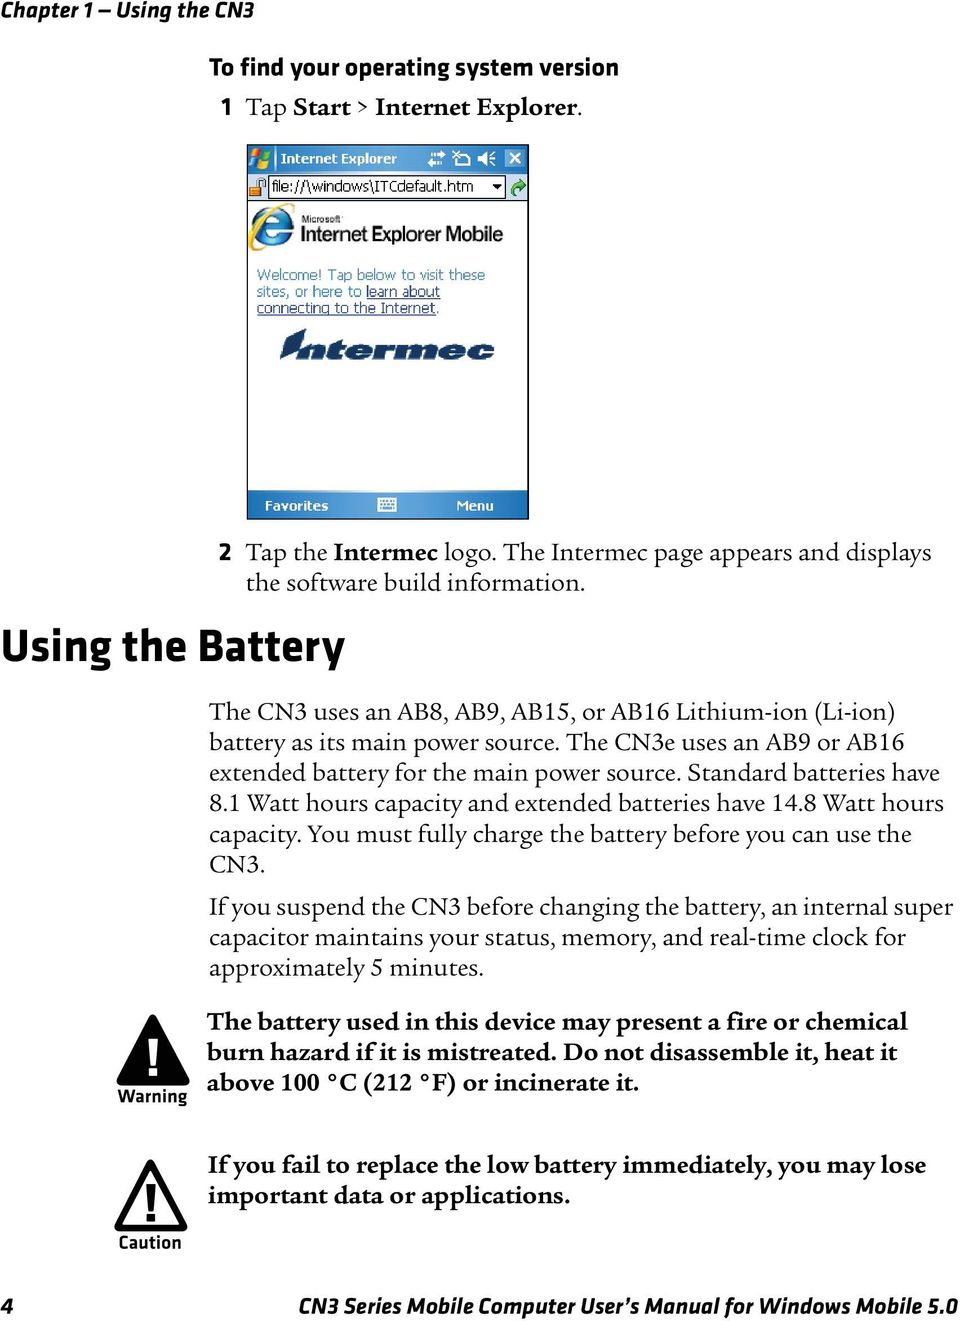 4 CN3 Series Mobile Computer User s Manual for Windows Mobile 5.0. The CN3e  uses an AB9 or AB16 extended battery for the main power source. Standard